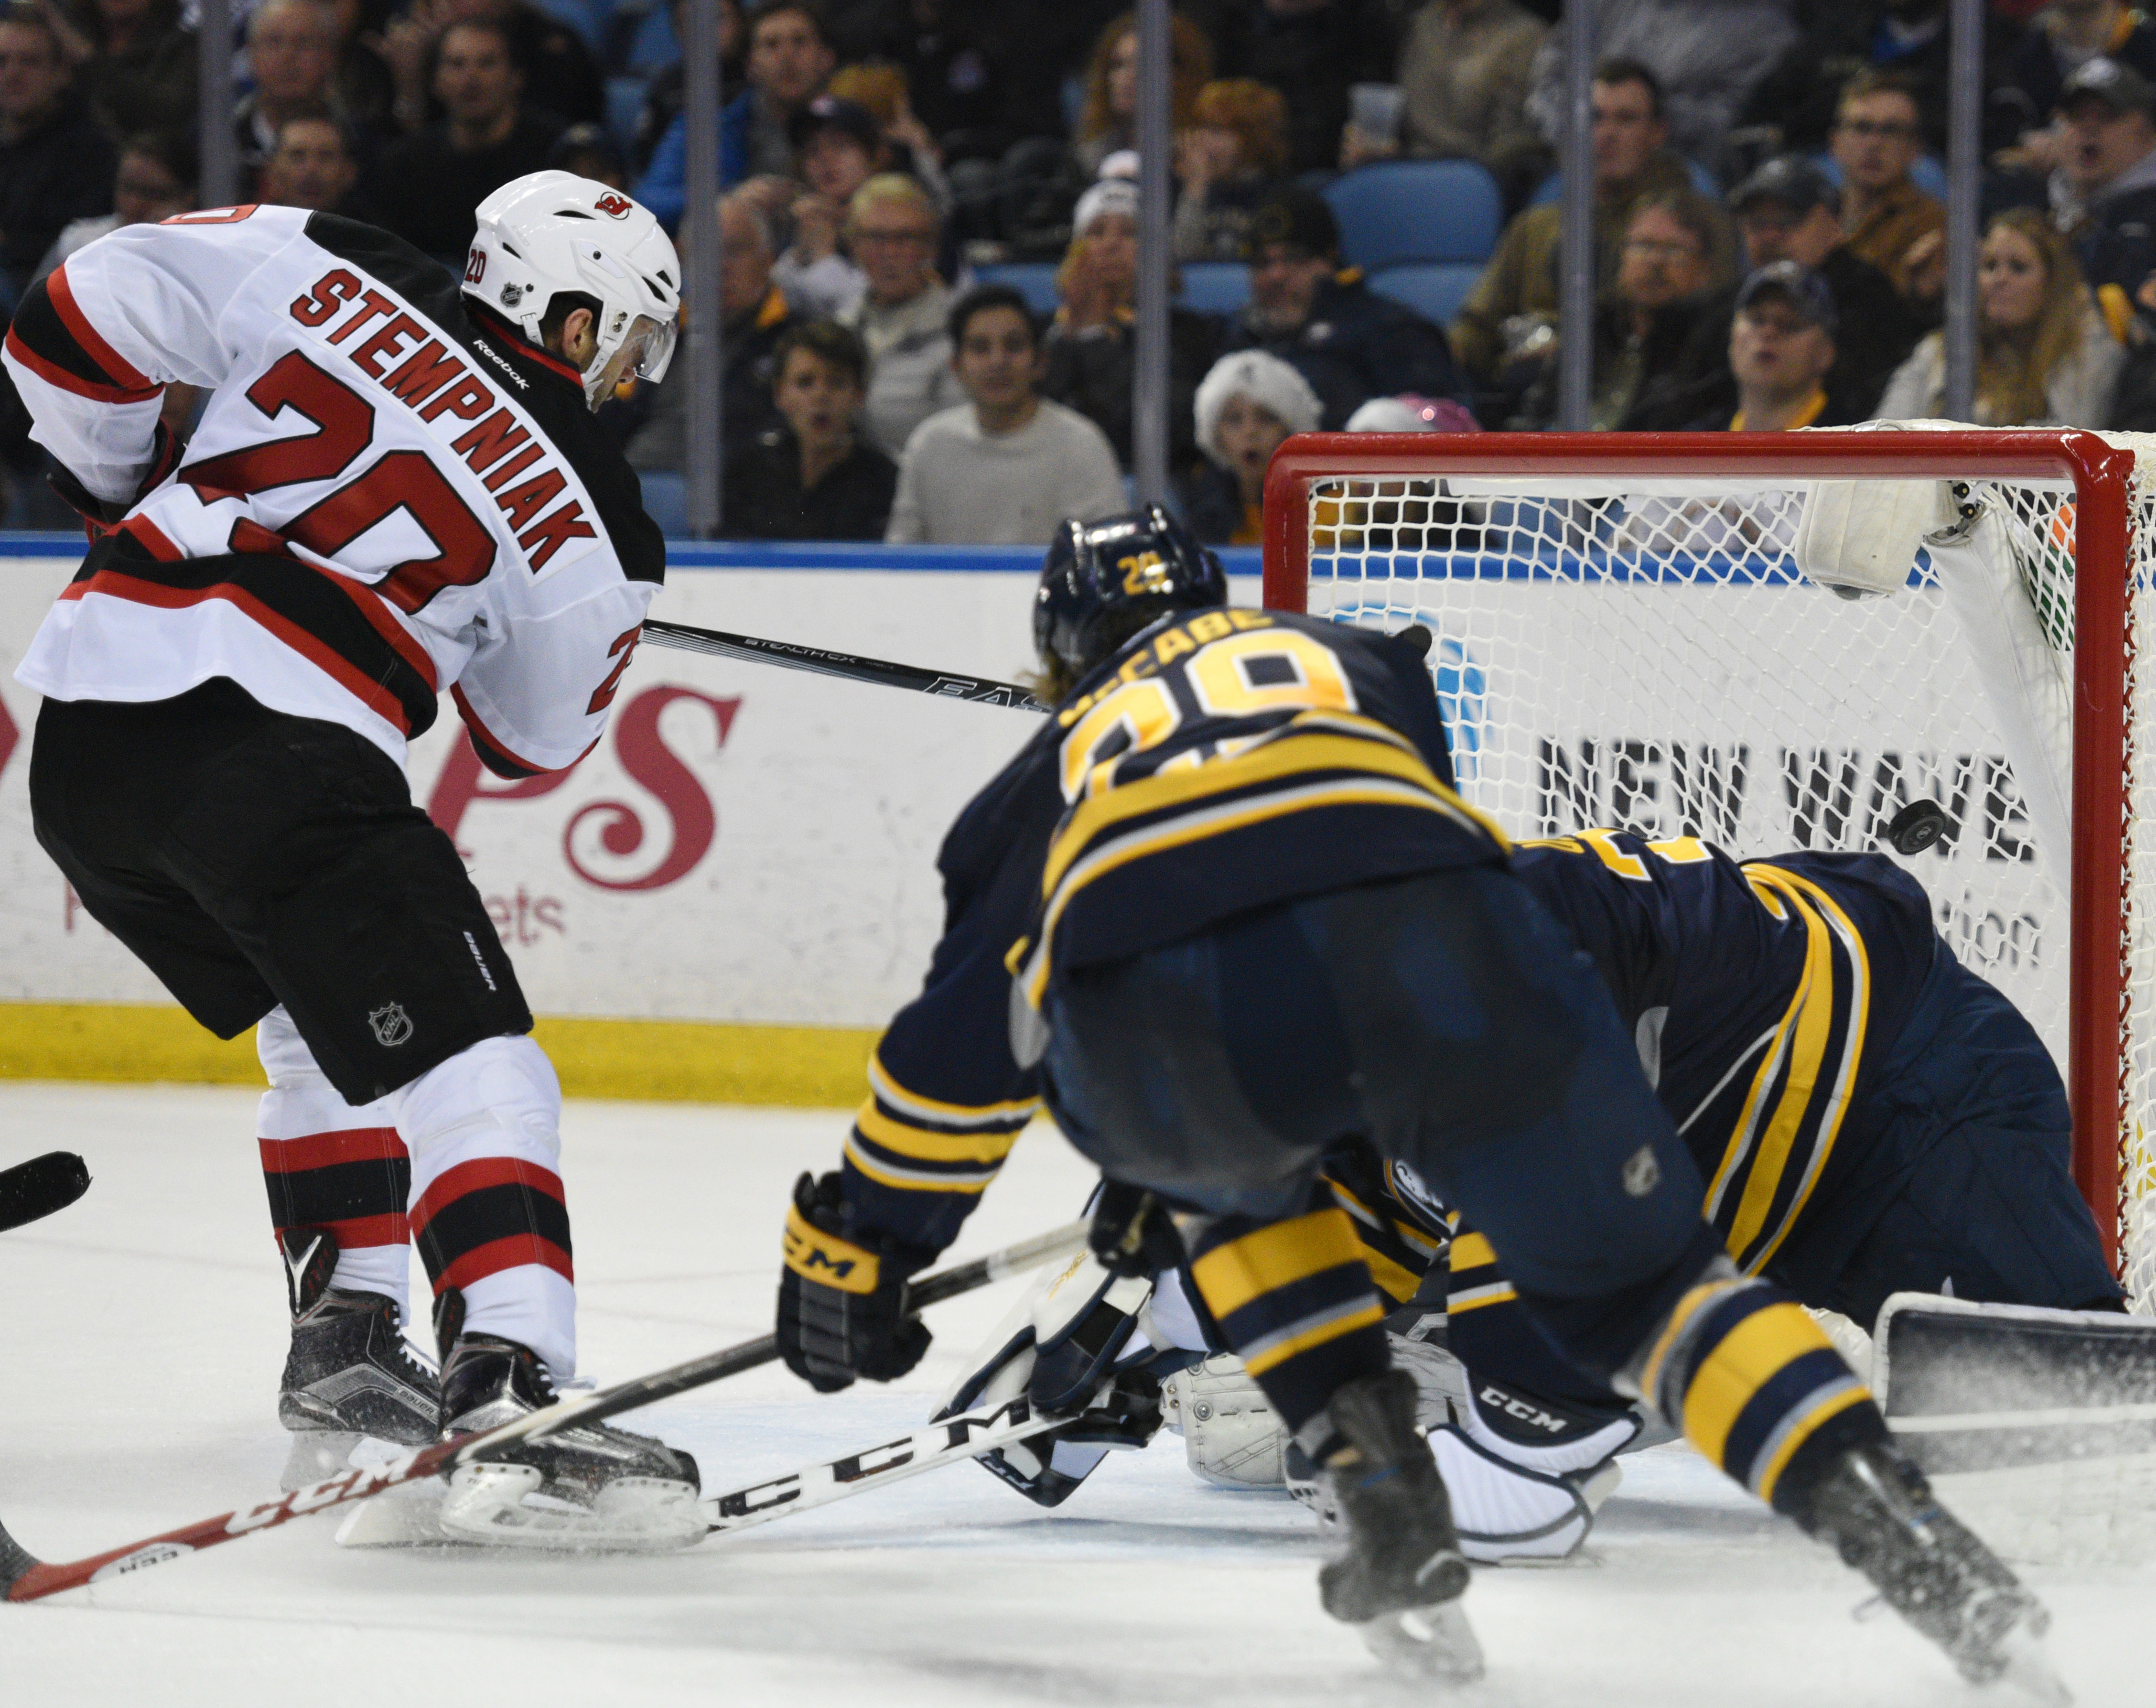 New Jersey Devils right winger Lee Stempniak (20) scores as Sabres goaltender Linus Ullmark, of Sweden, and defenseman Brian McCabe defend during the second period of an NHL hockey game, Tuesday Dec. 15, 2015 in Buffalo, N.Y. (AP Photo/Gary Wiepert)